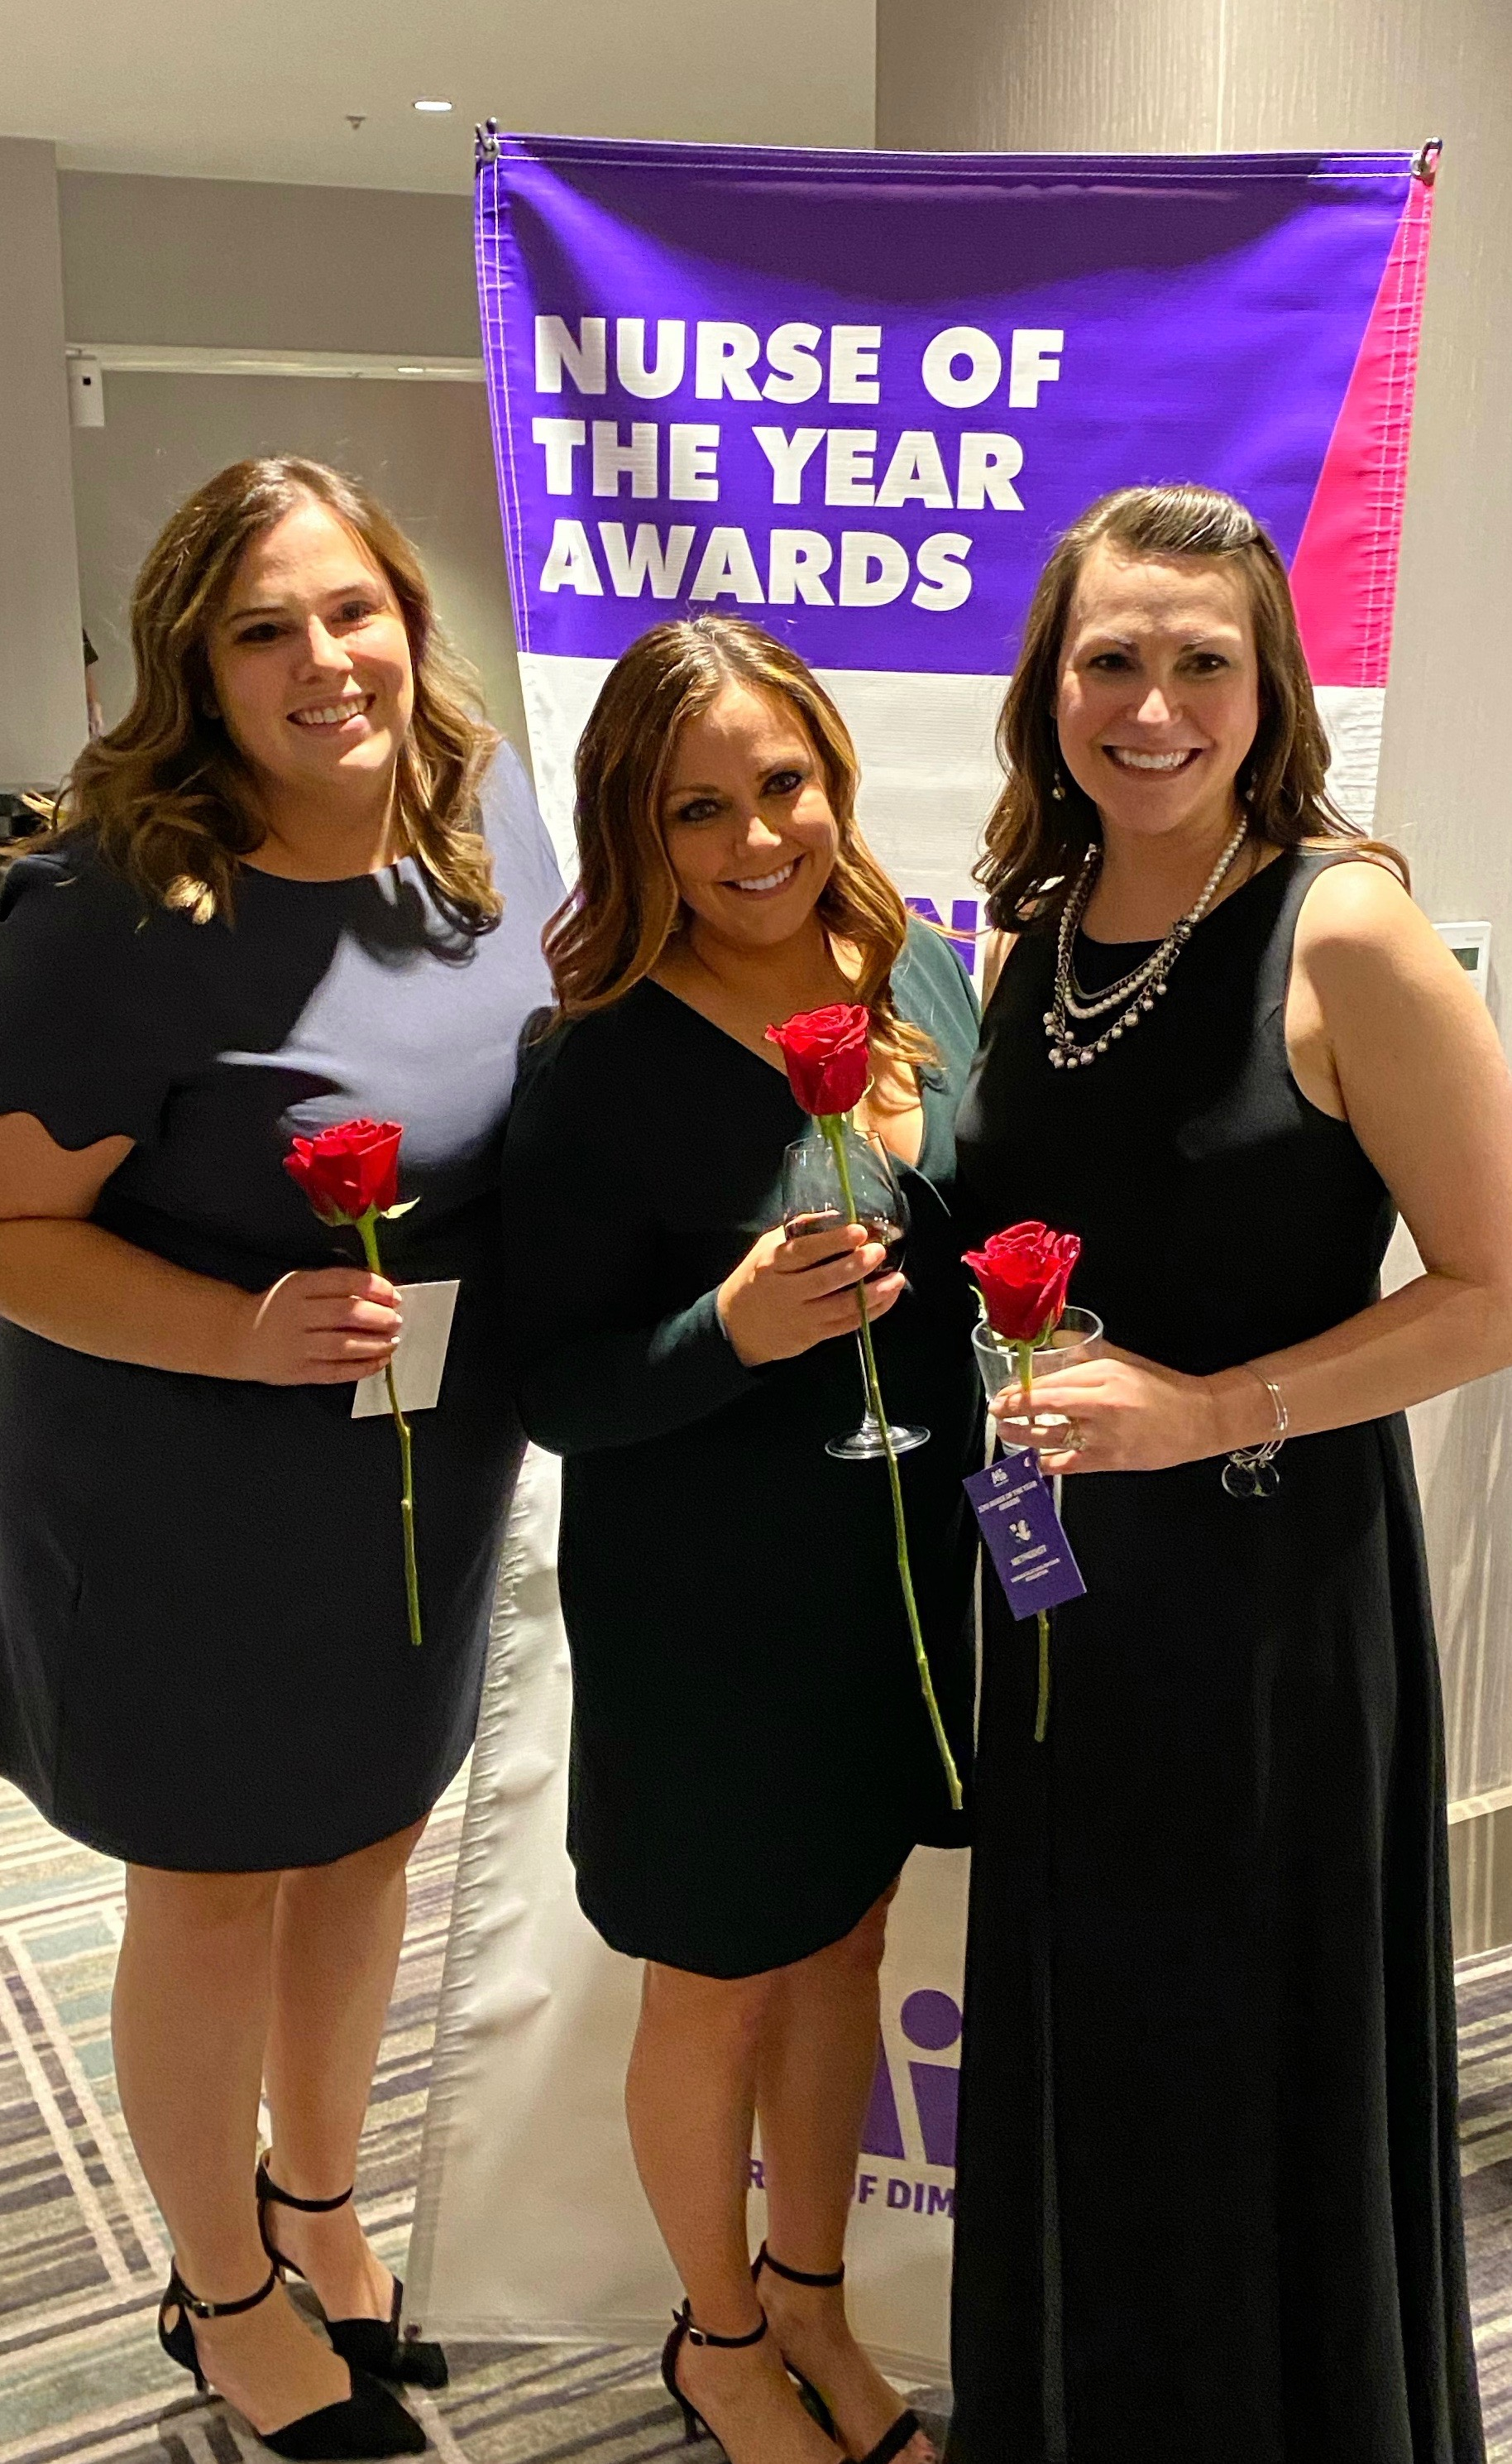 Boys Town Nurses awarded for Nurse of the Year